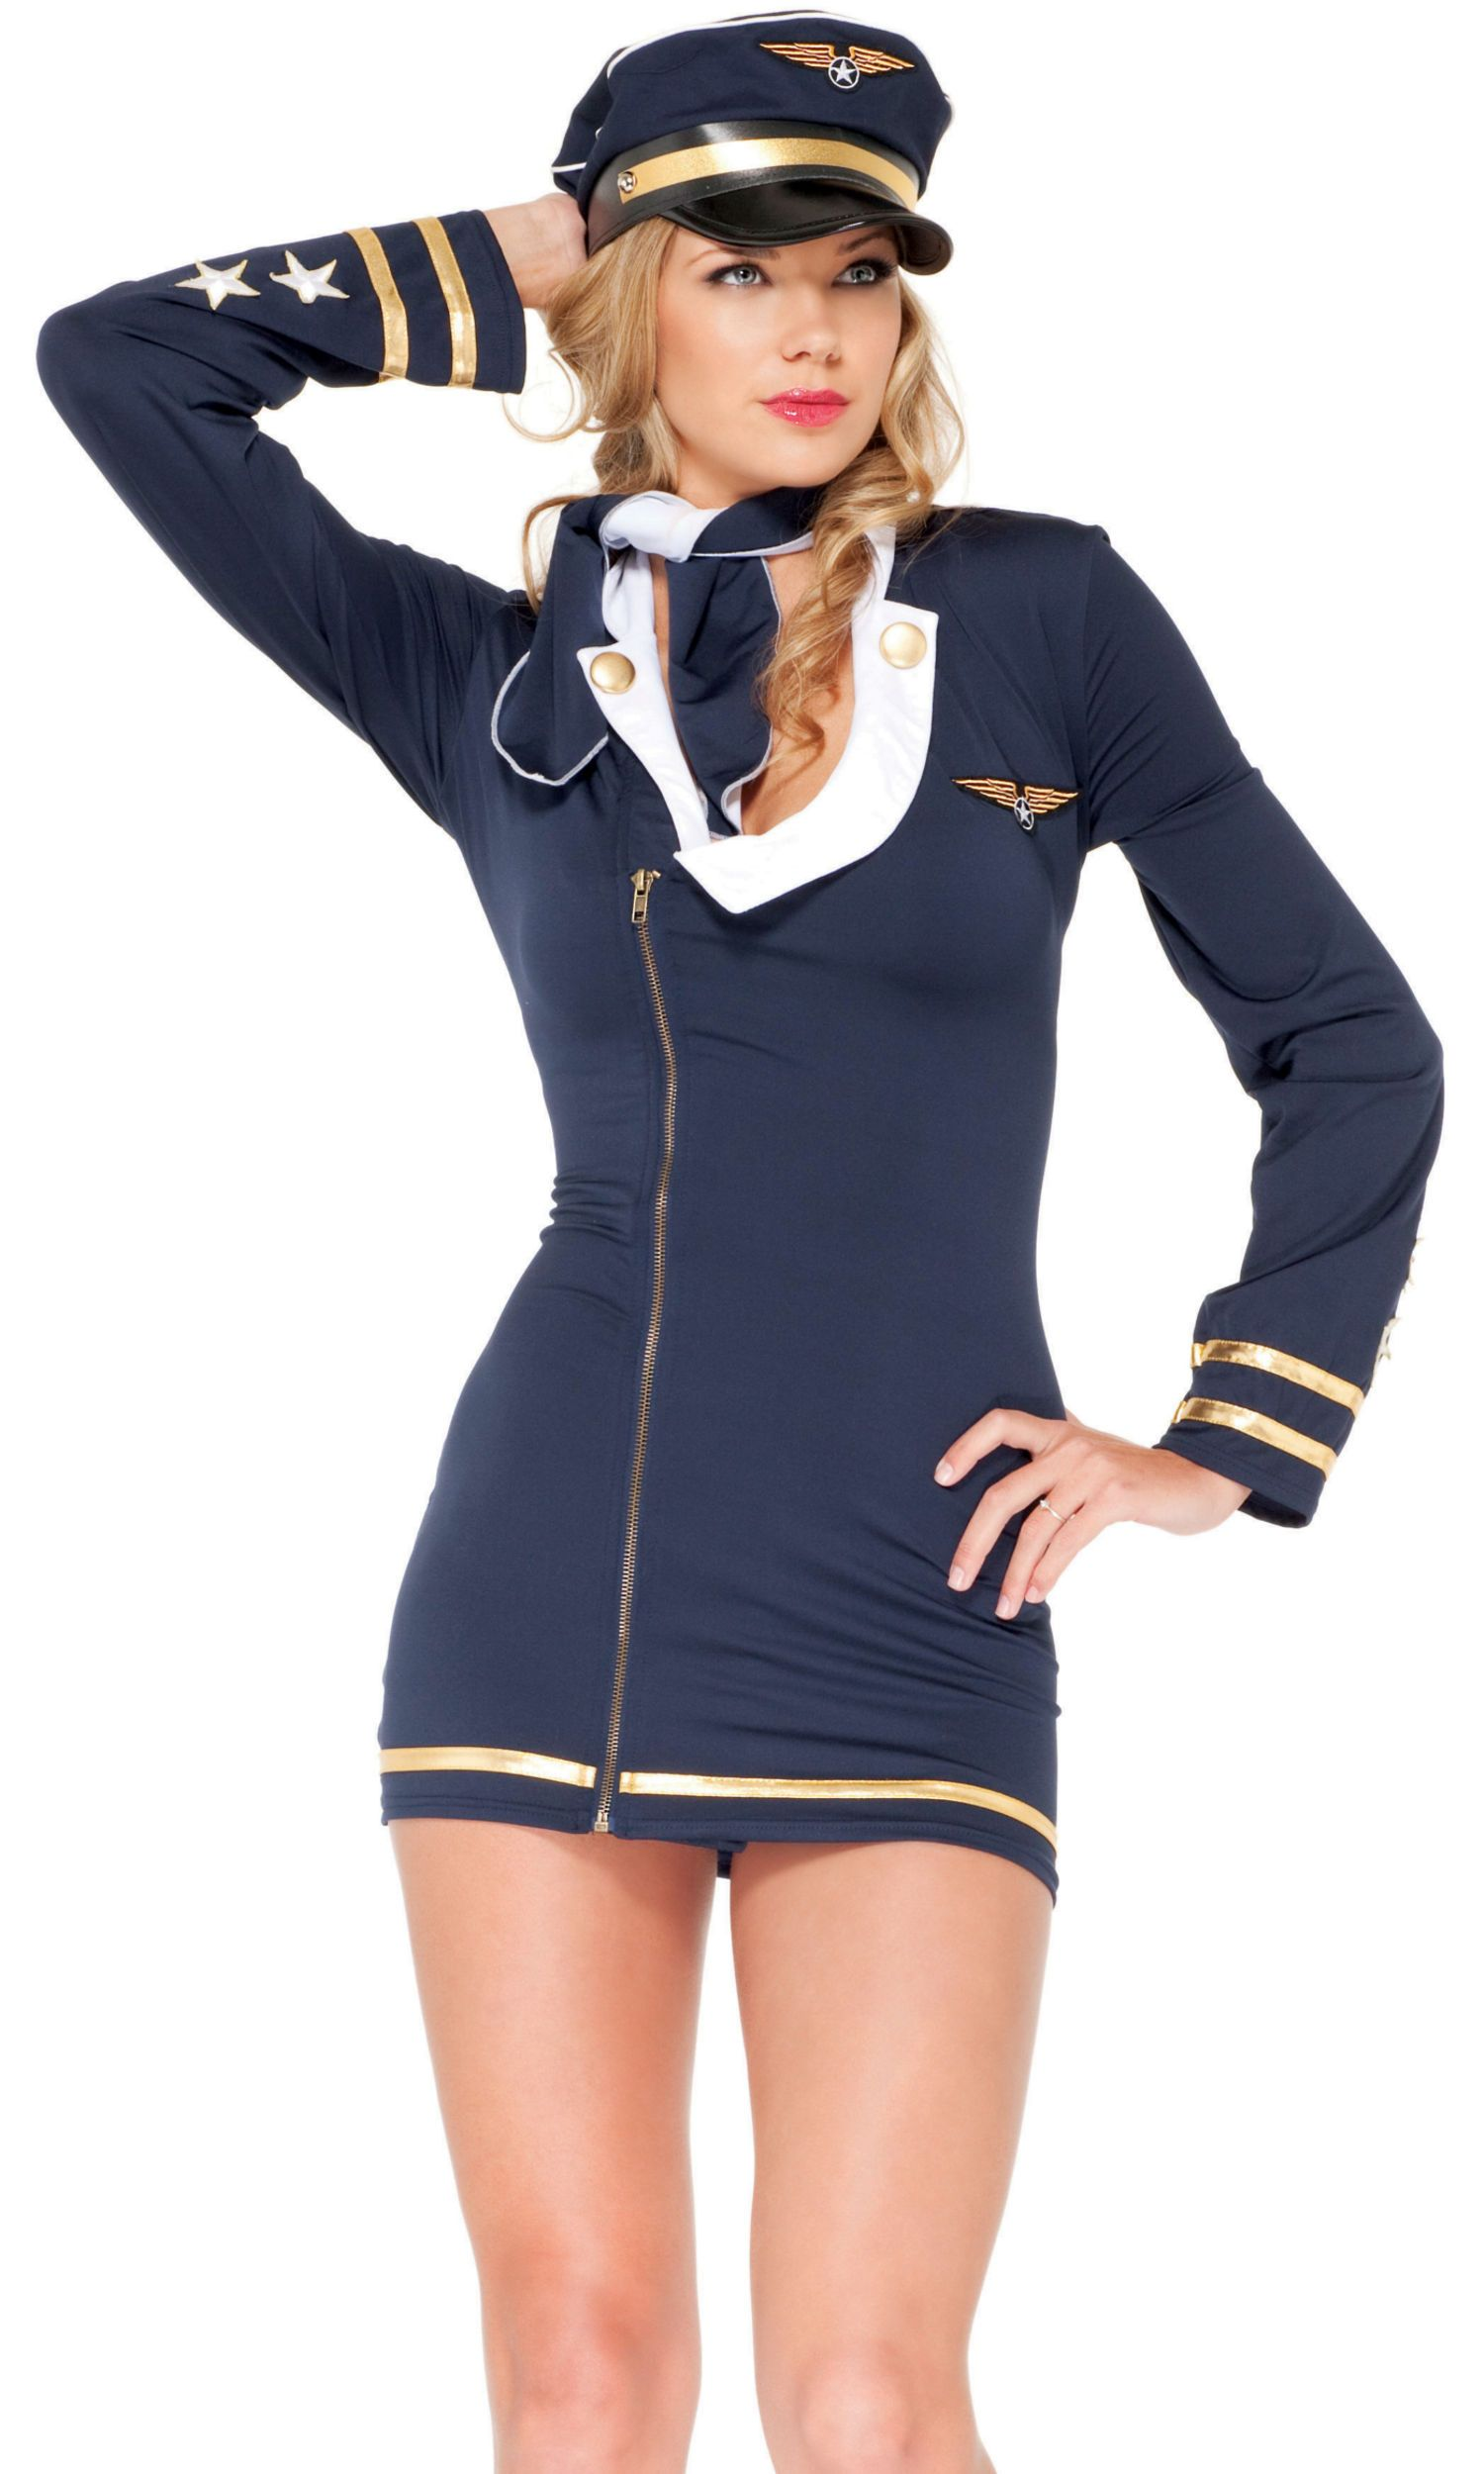 Charades Horny Mile Excessive Captain Lady Airplane Pilot Costume Medium M Fly Me Blk